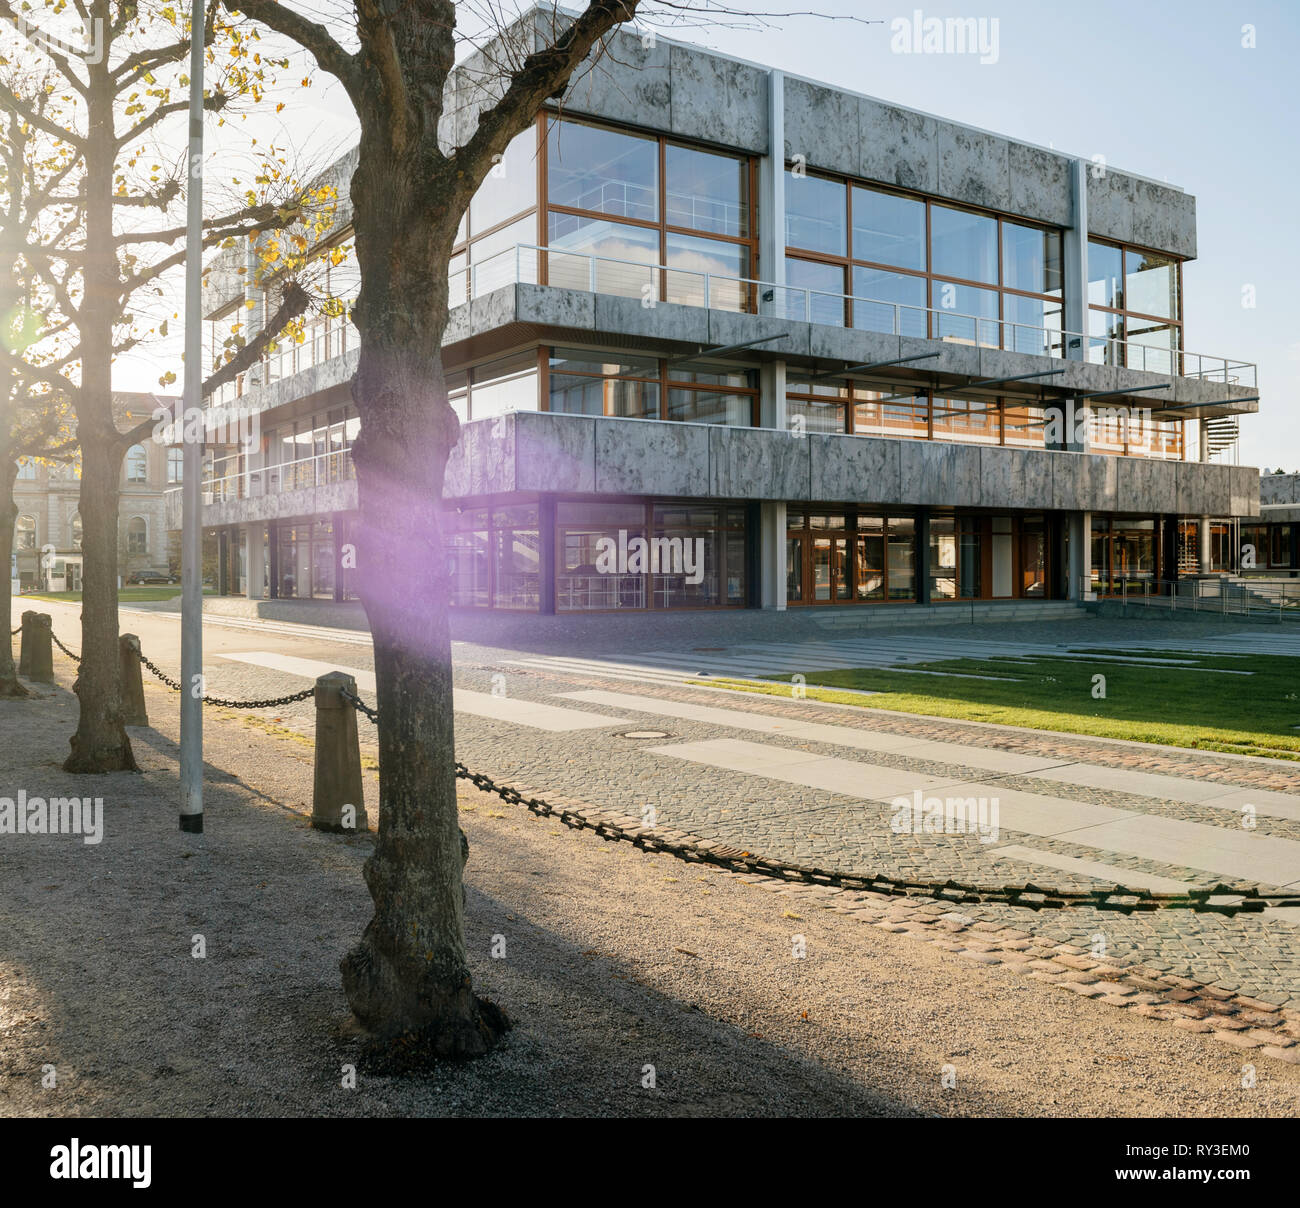 Karlsruhe, Germany - Oct 29 2017: Sunlight over empty alley in front of Federal Constitutional Court building Bundesverfassungsgericht the supreme court for of Germany - Stock Image